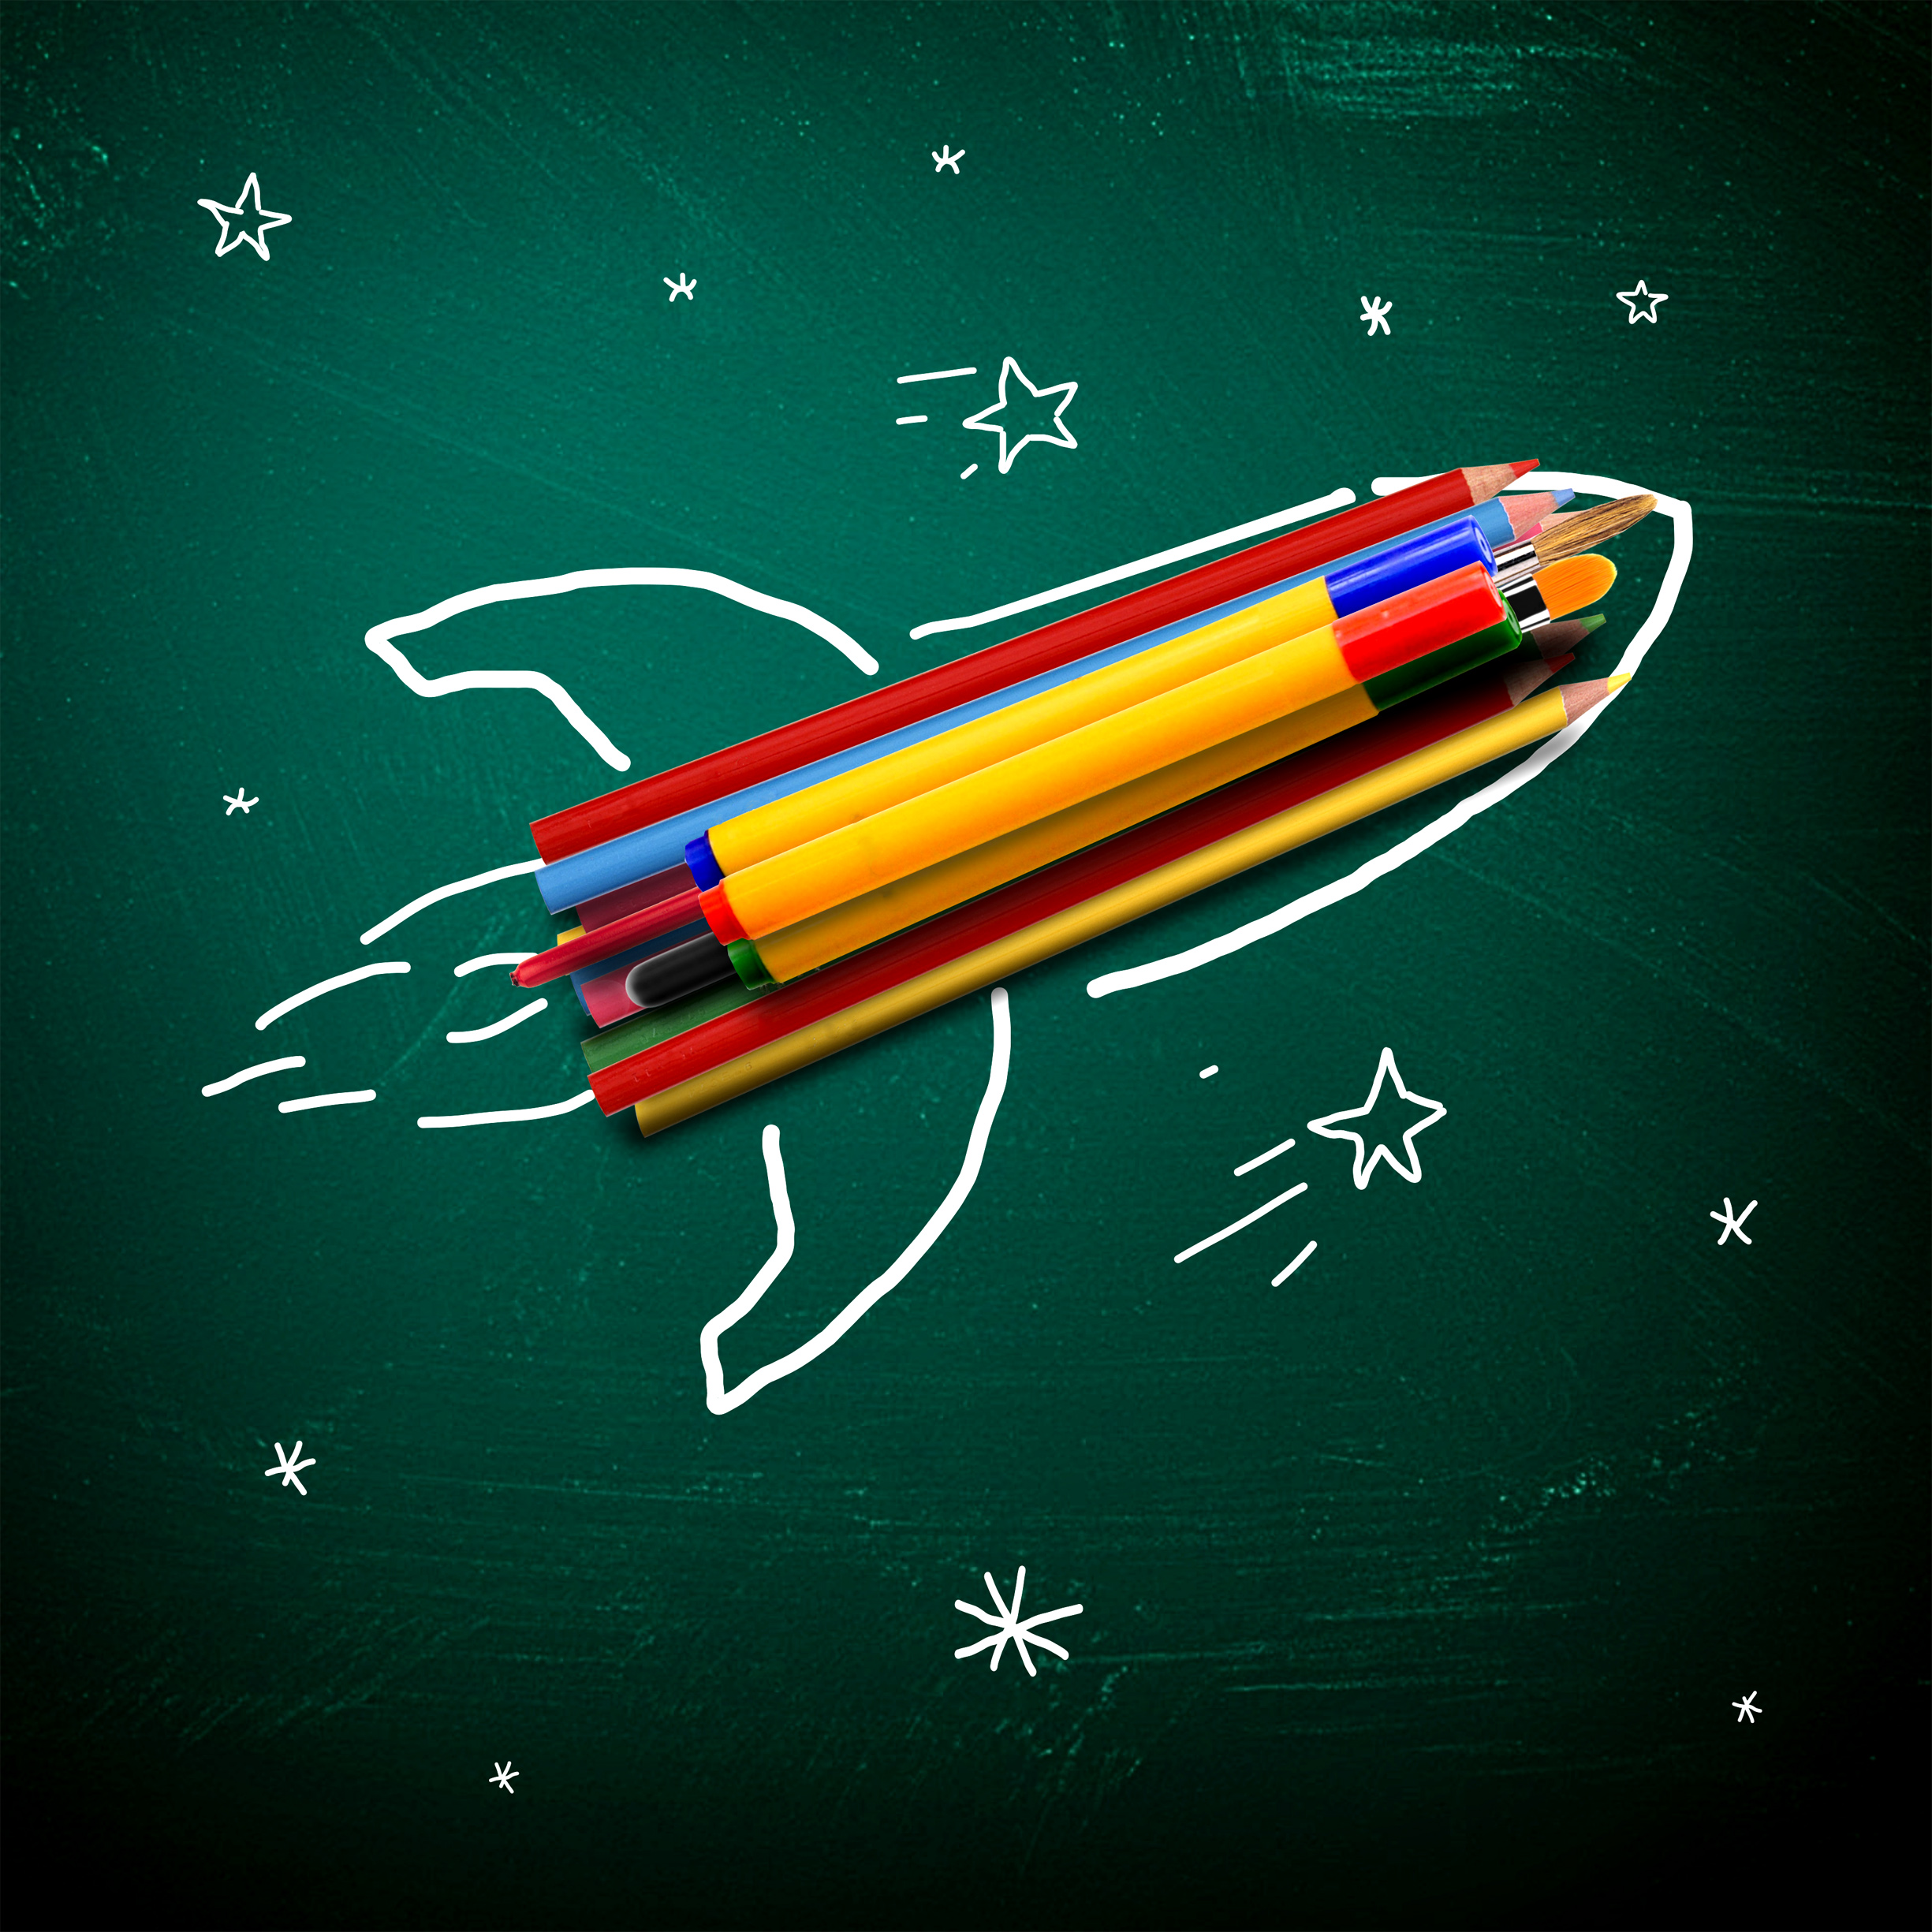 School stationery on a rocket - school and learning concept photo